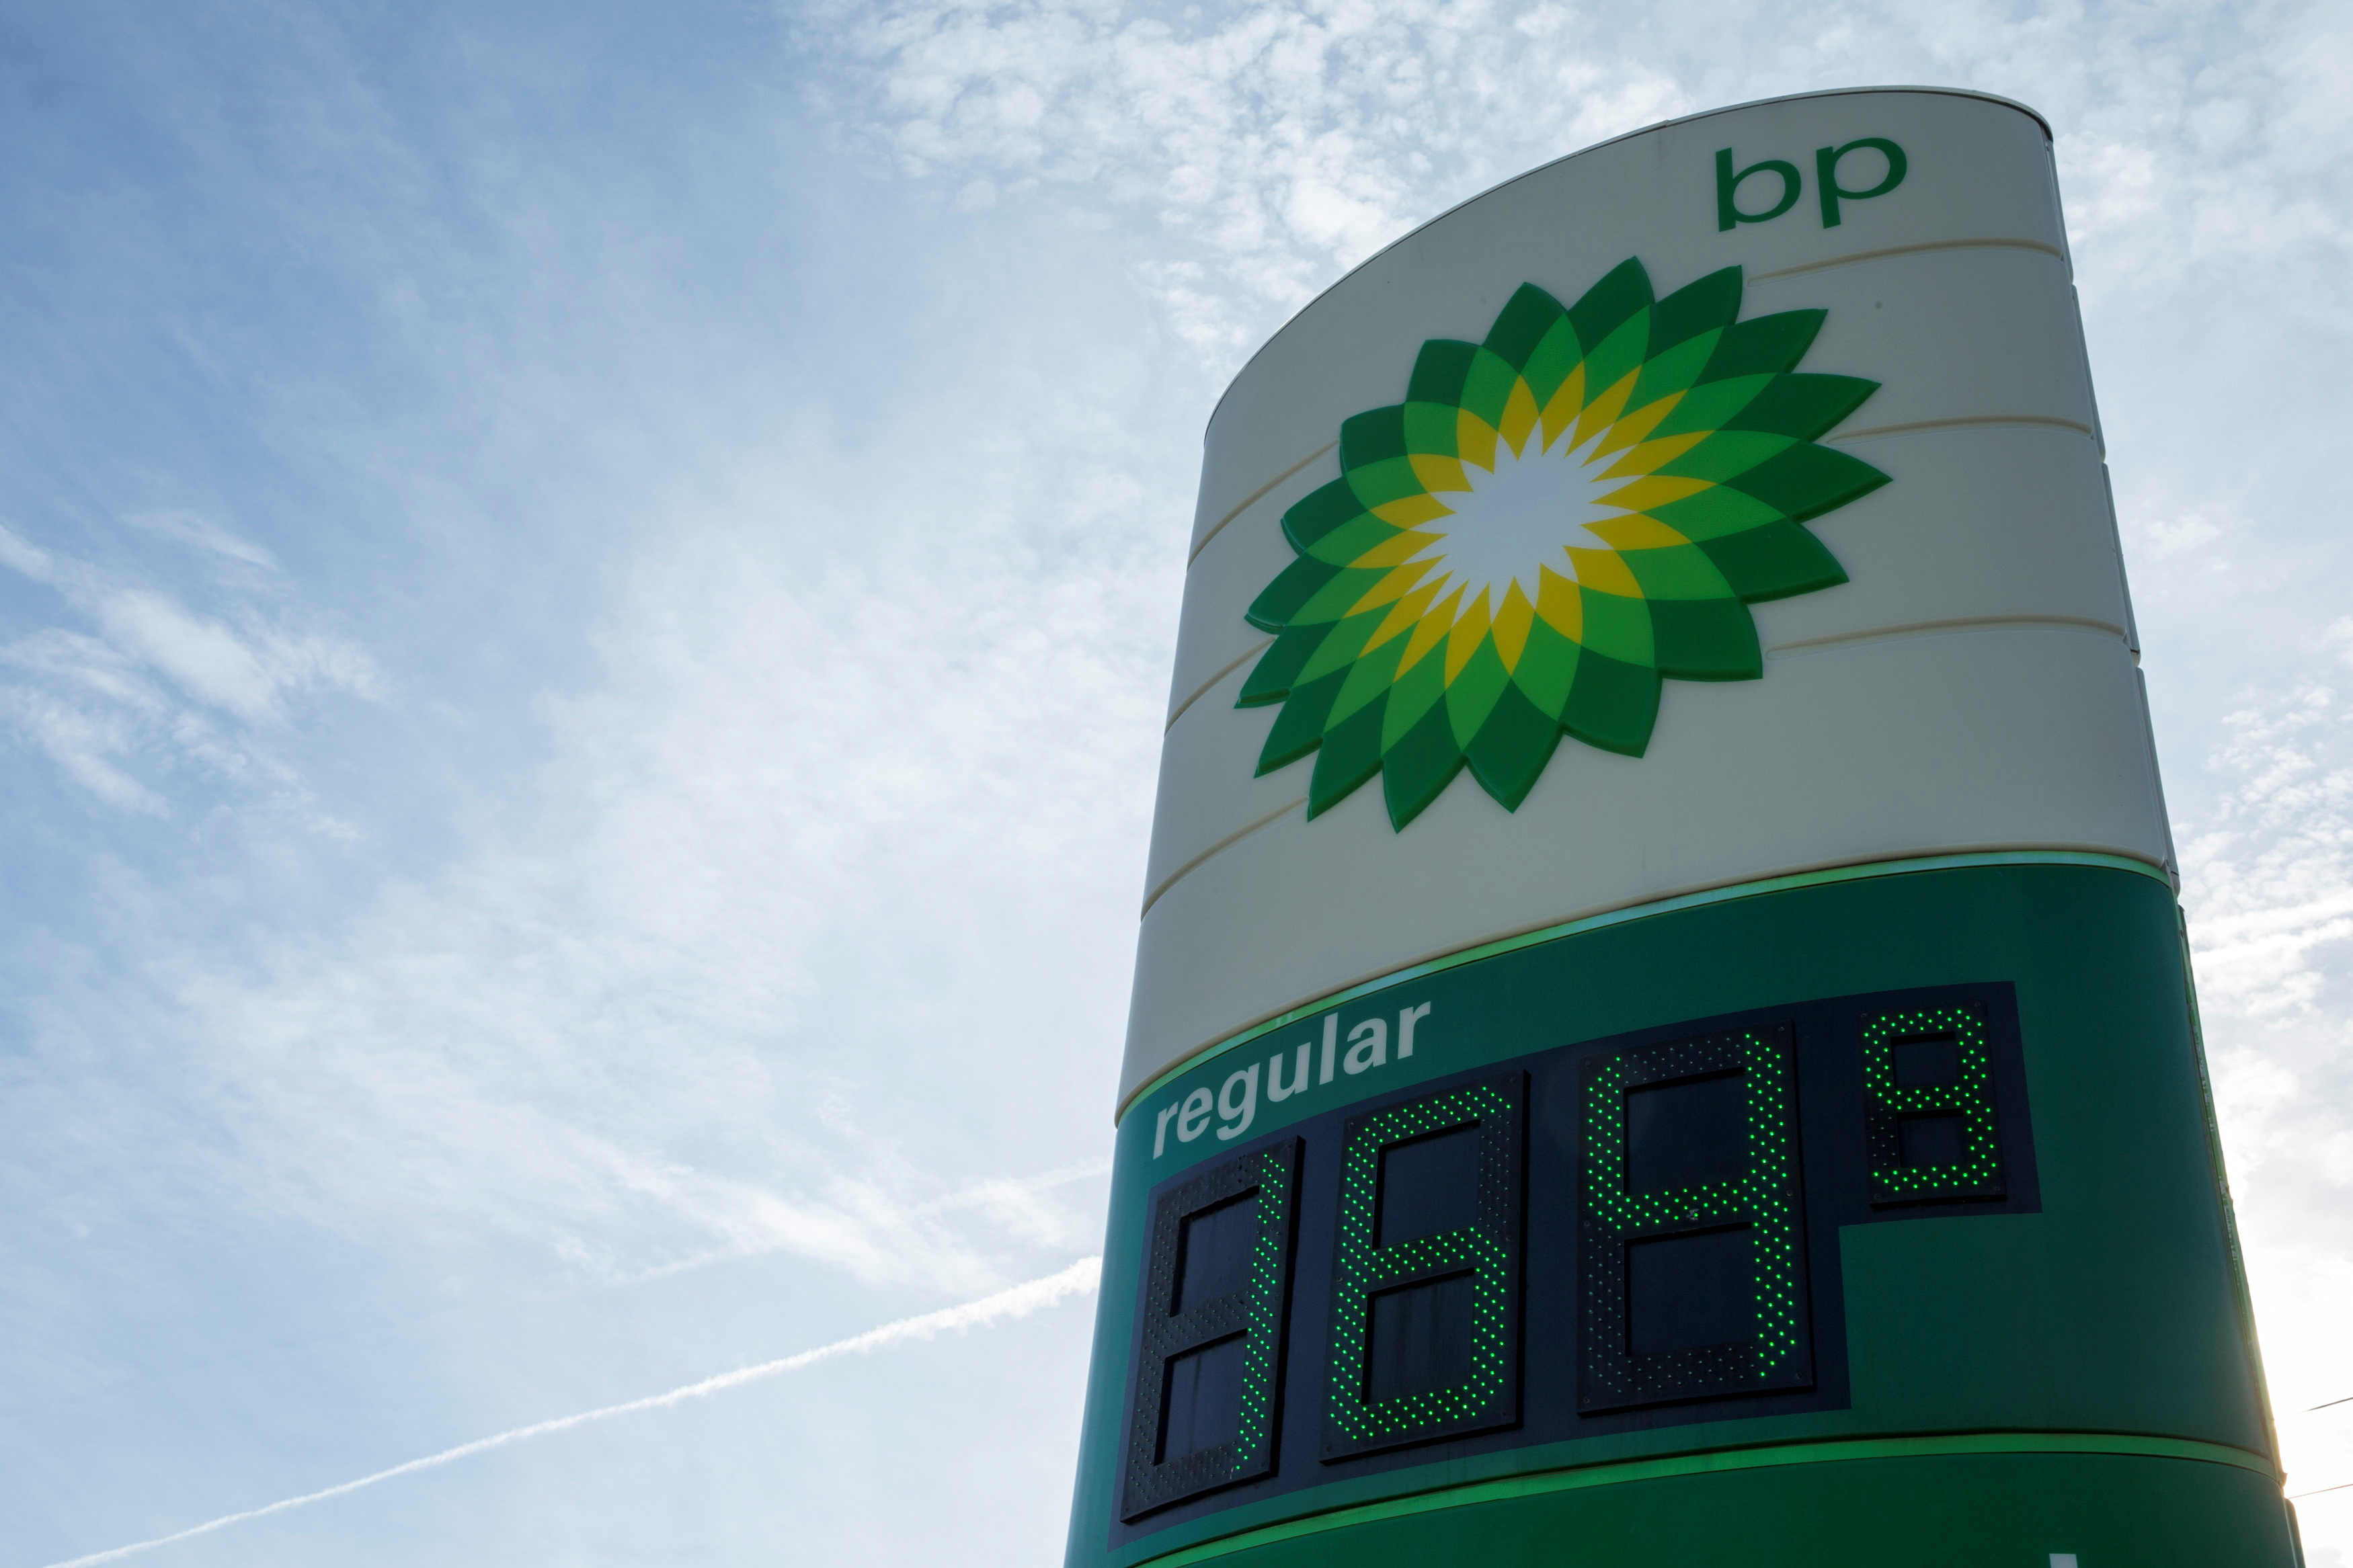 The price for regular unleaded gasoline is advertised at a BP station in Troy, Missouri January 17, 2015.  REUTERS/Whitney Curtis/File Photo